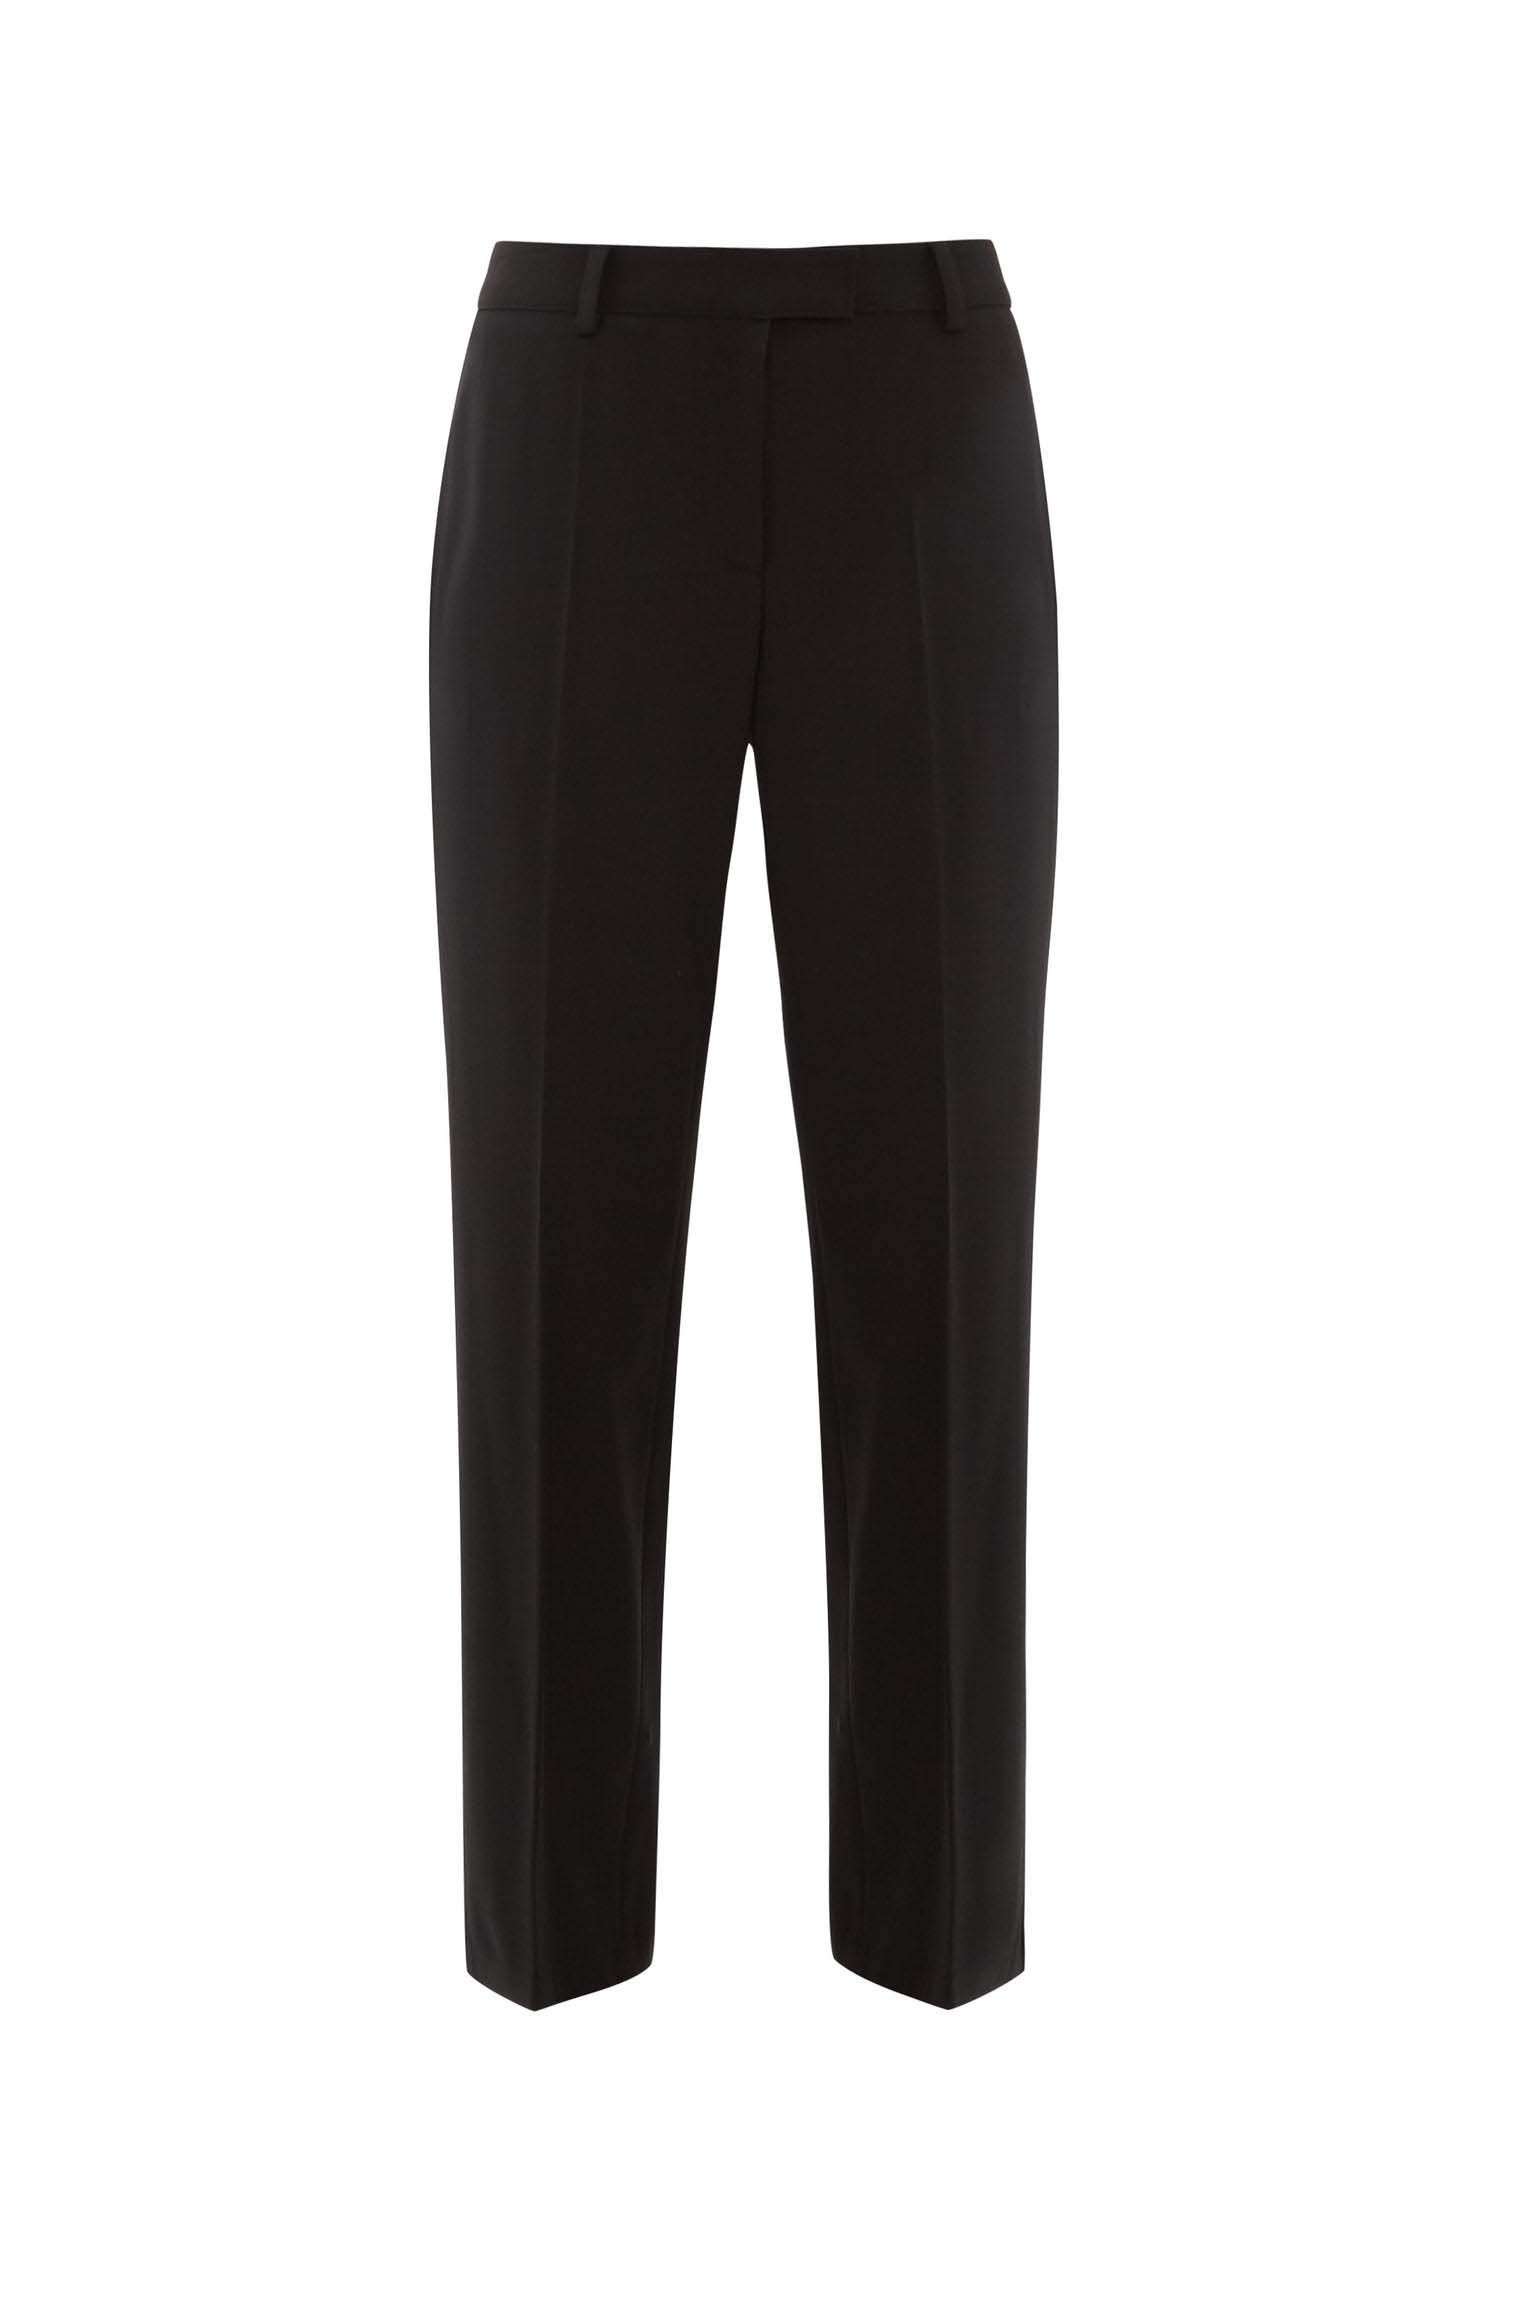 New Look Womens Vicky Highwaist Trousers